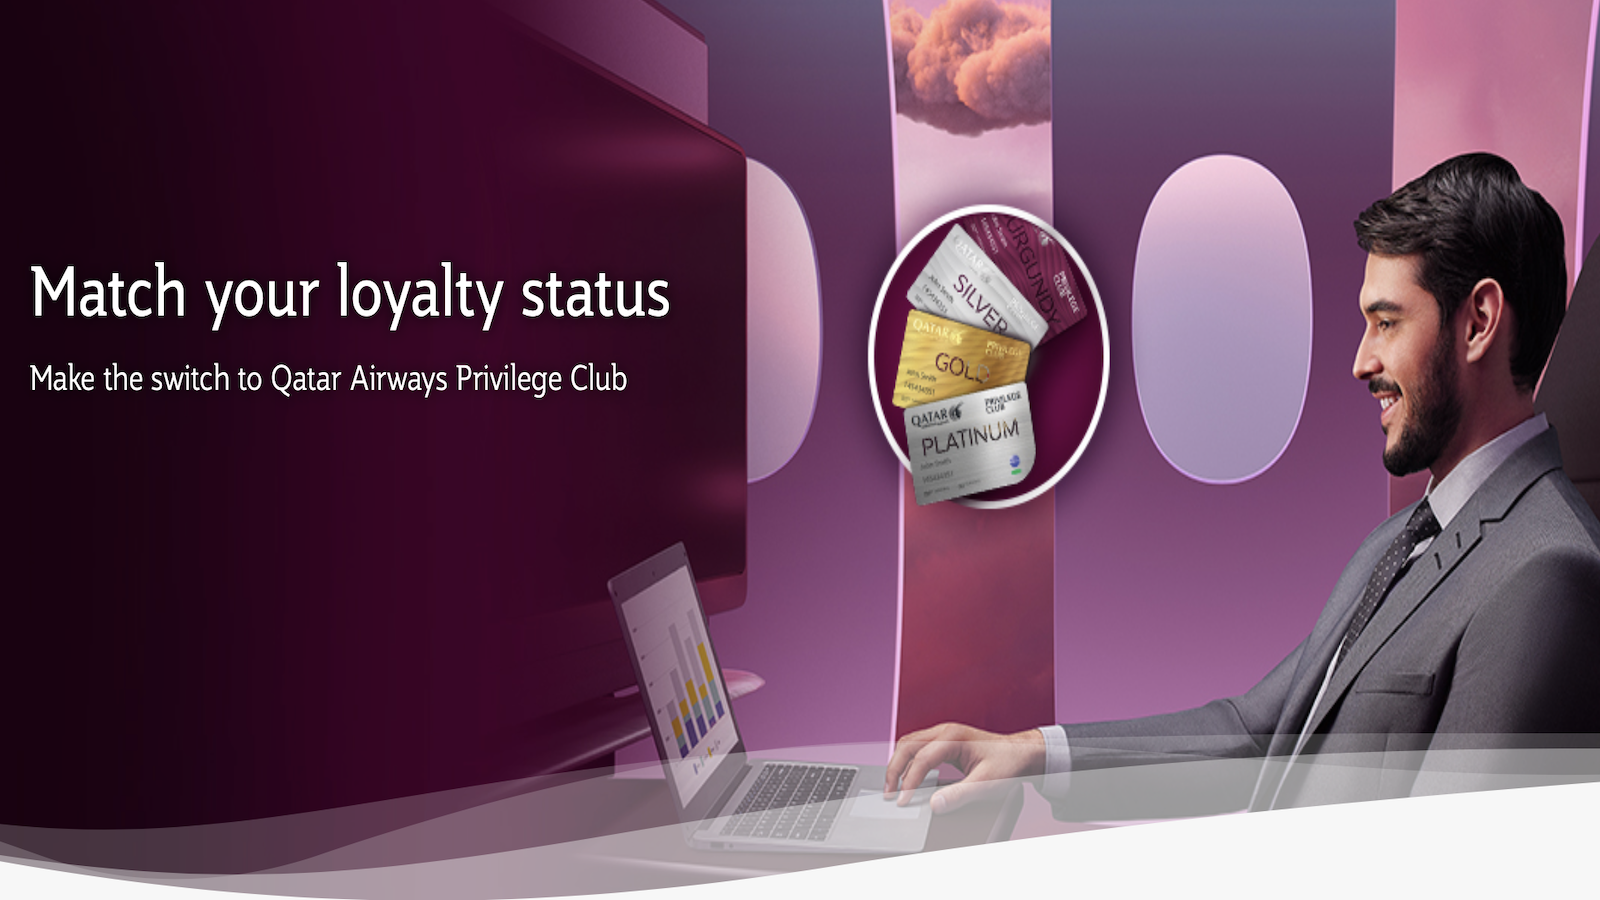 Hold Velocity status? If so, you can get status matched to elite levels in Qatar Privileges Club.